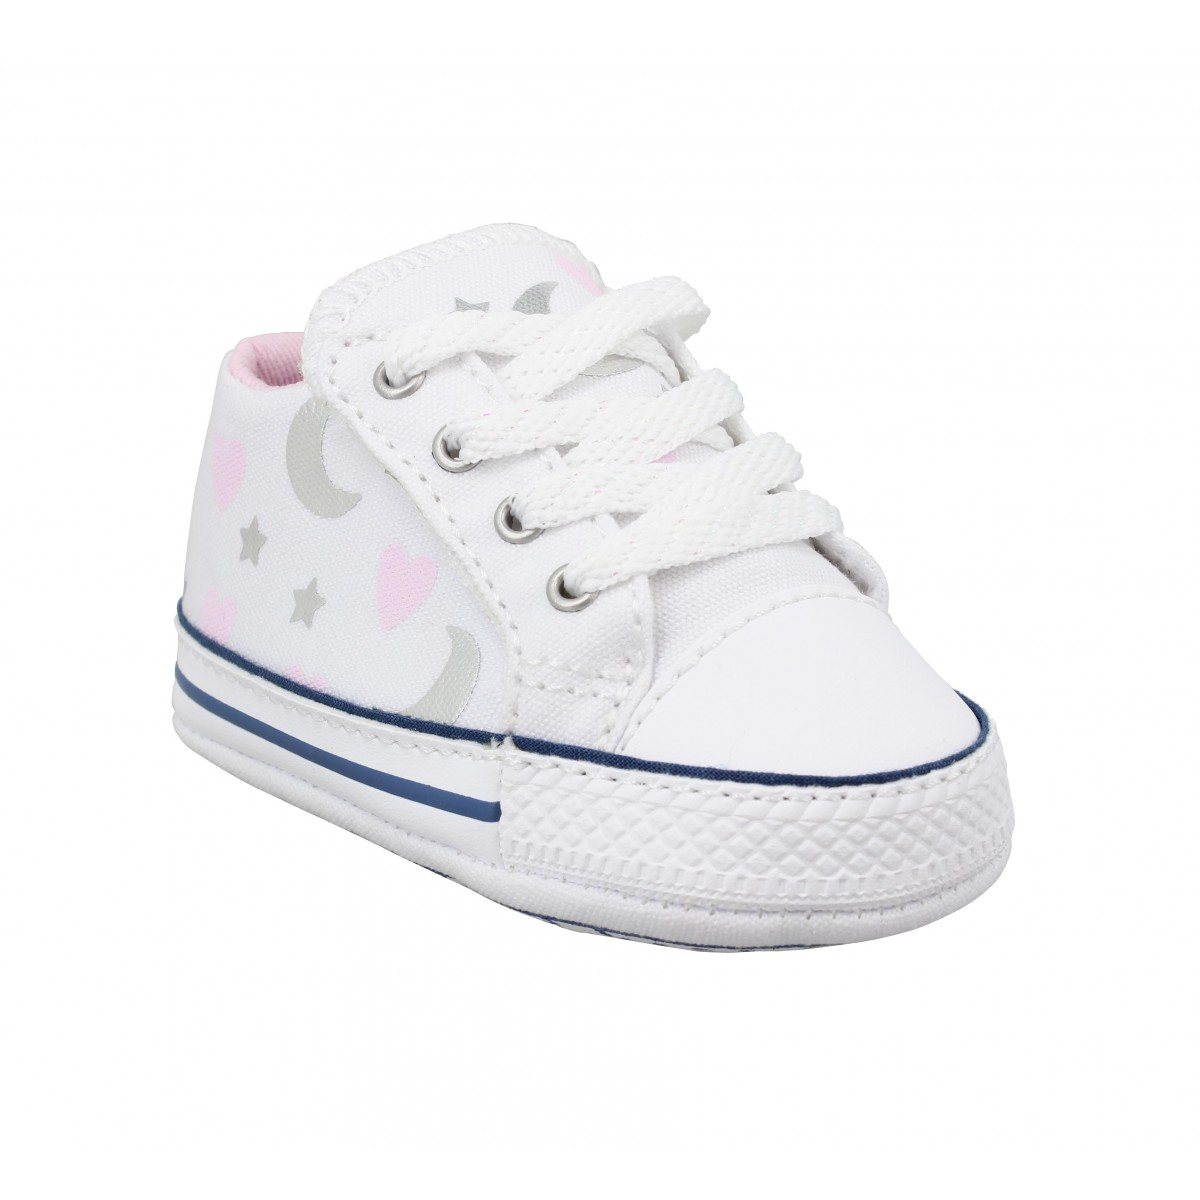 Baskets CONVERSE Chuck Taylor All Star Cribster Mid toile Enfant Blanc Rose